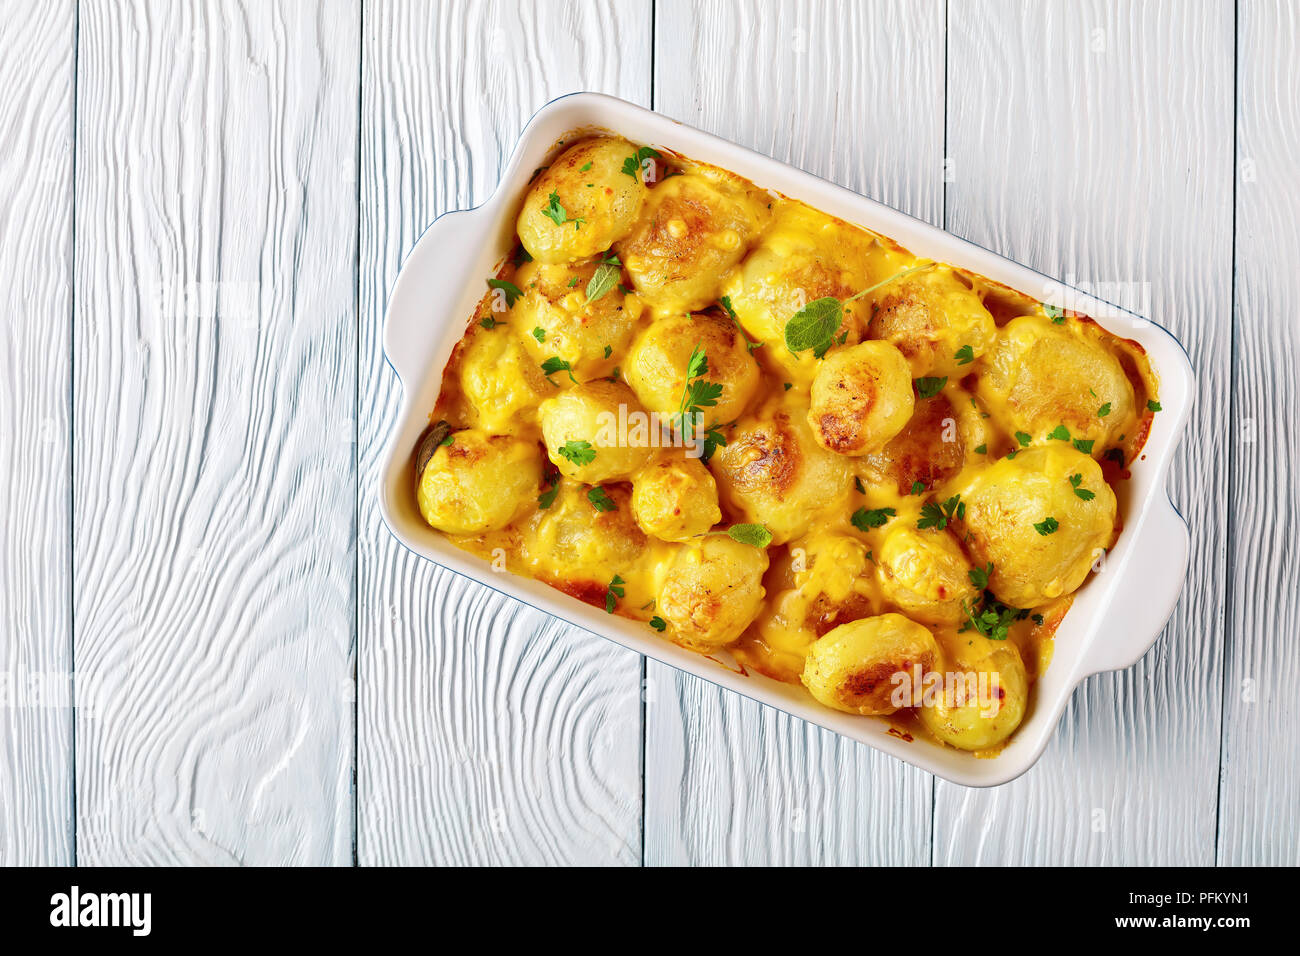 new potatoes with cheddar cheese butter sauce in a baking dish on a white wooden table, view from above, flat lay Stock Photo